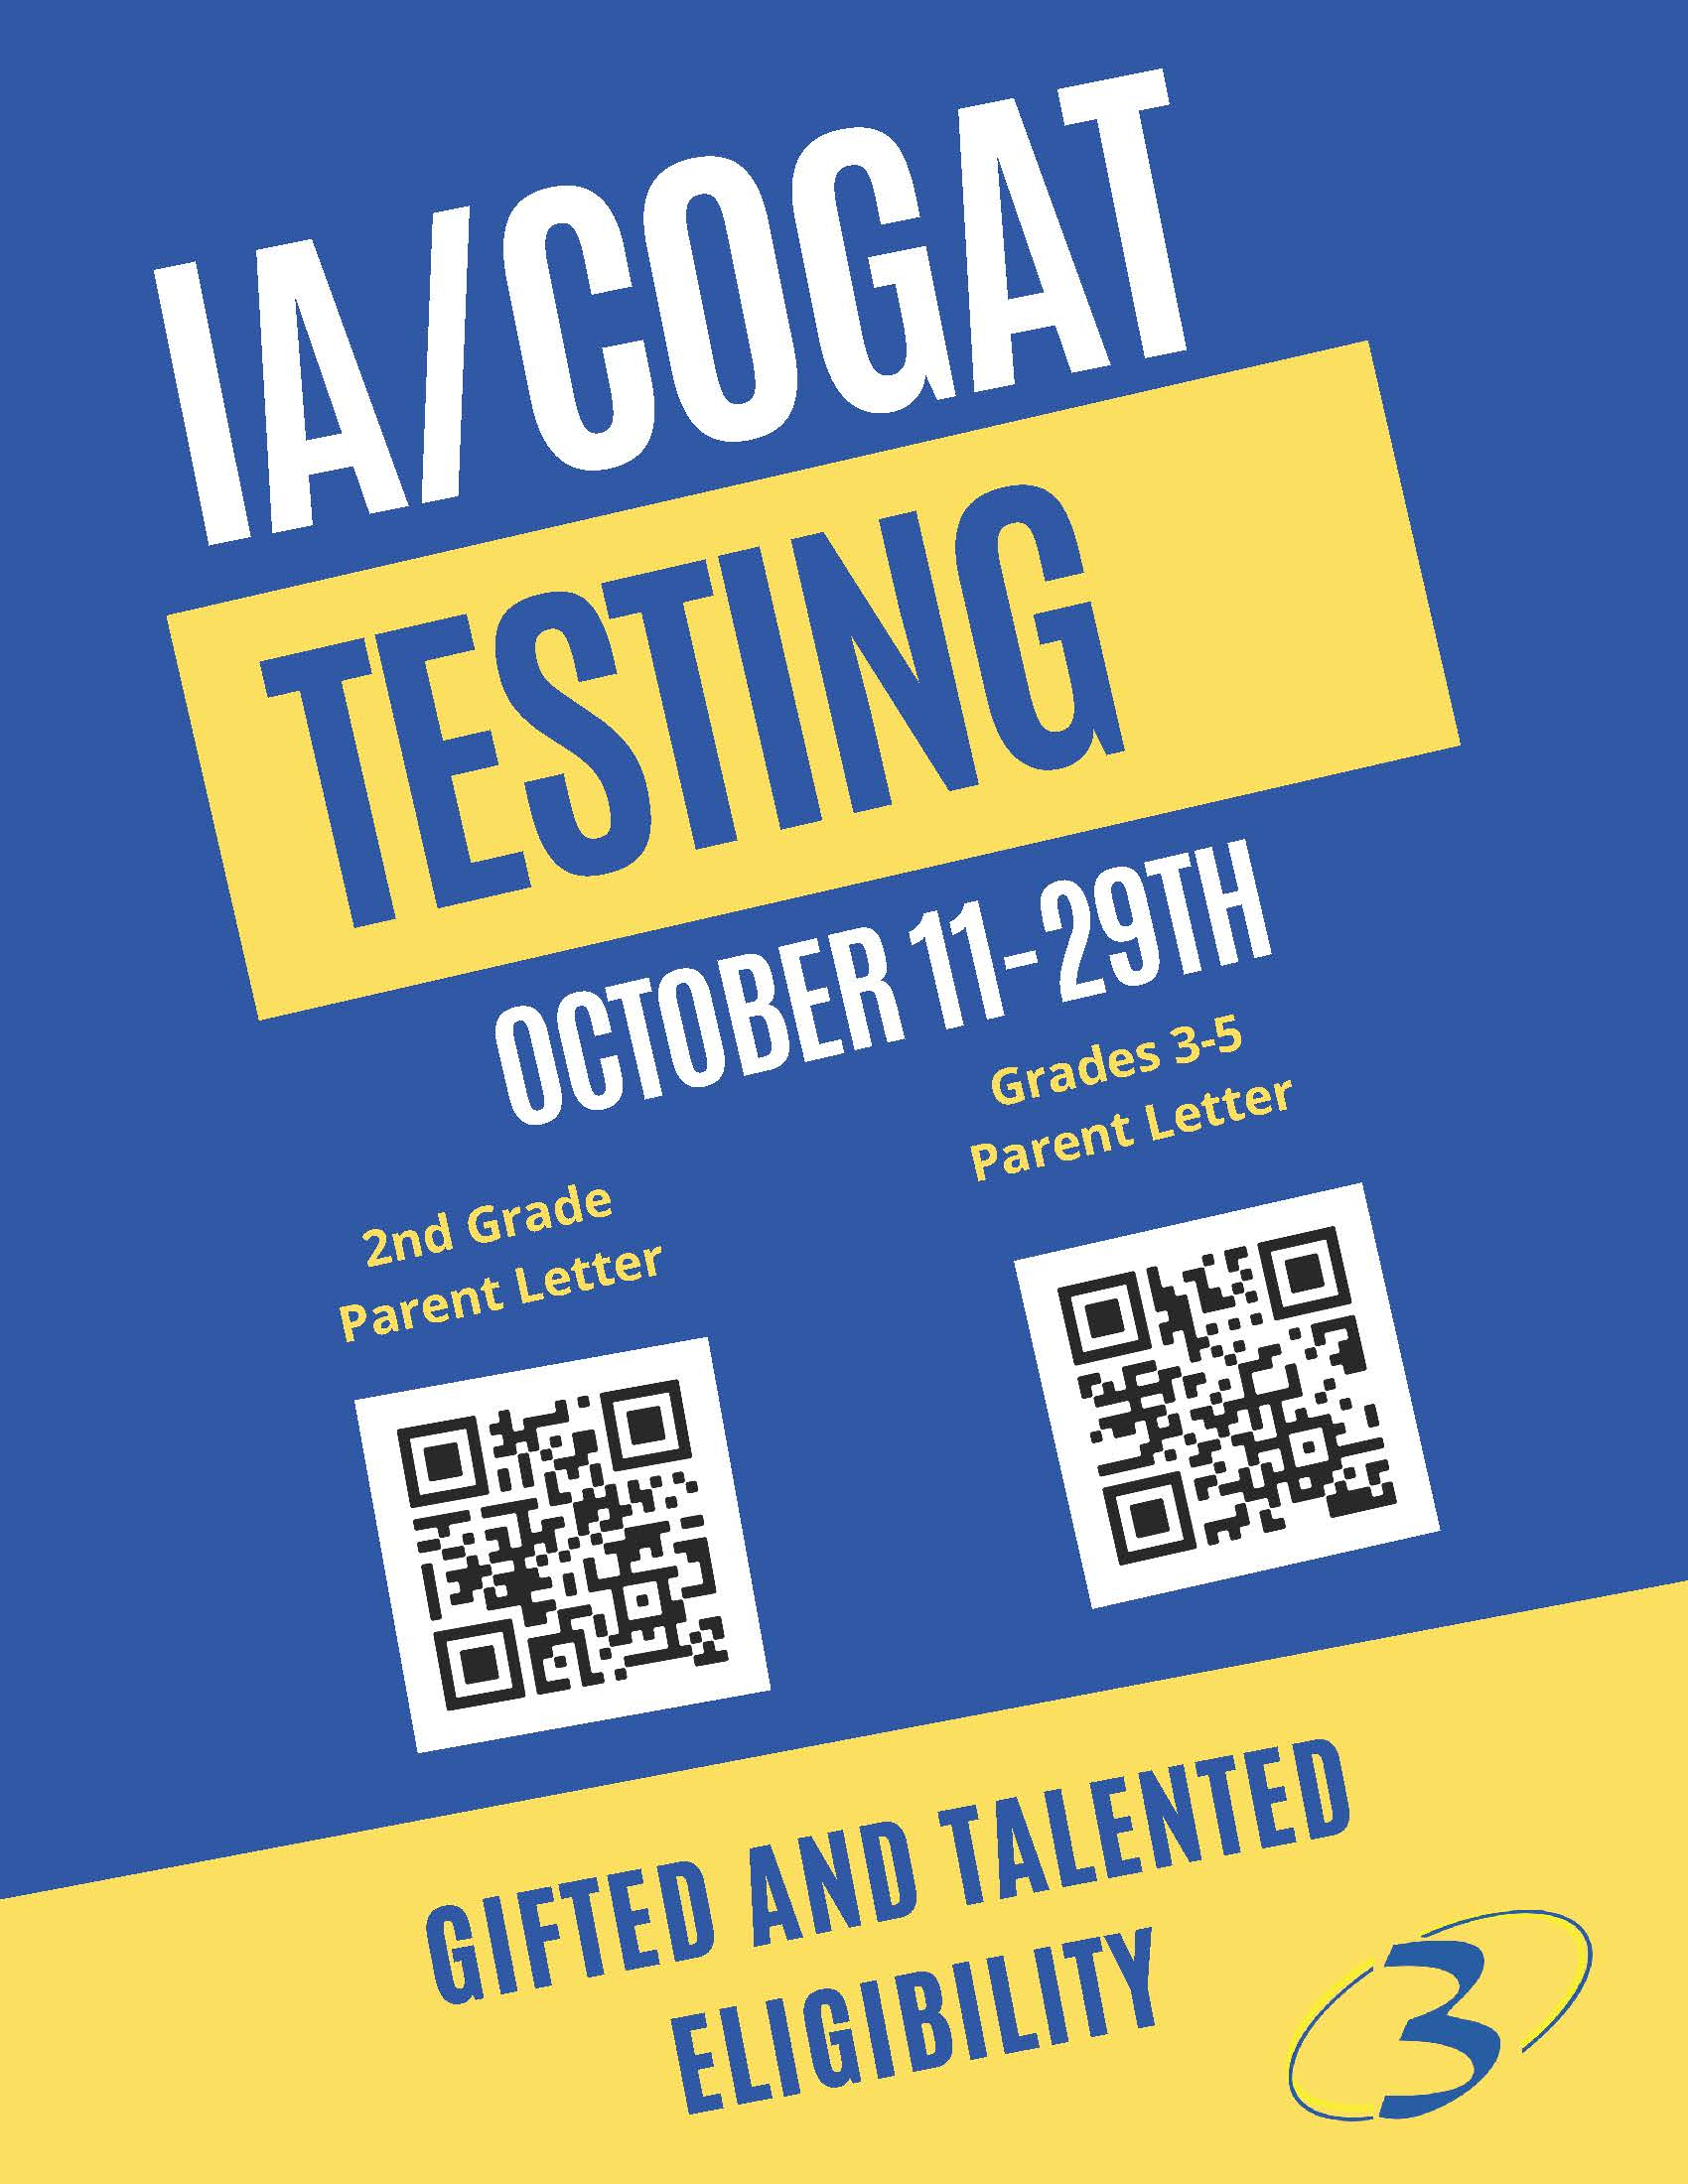 IA/COGAT testing with QR codes